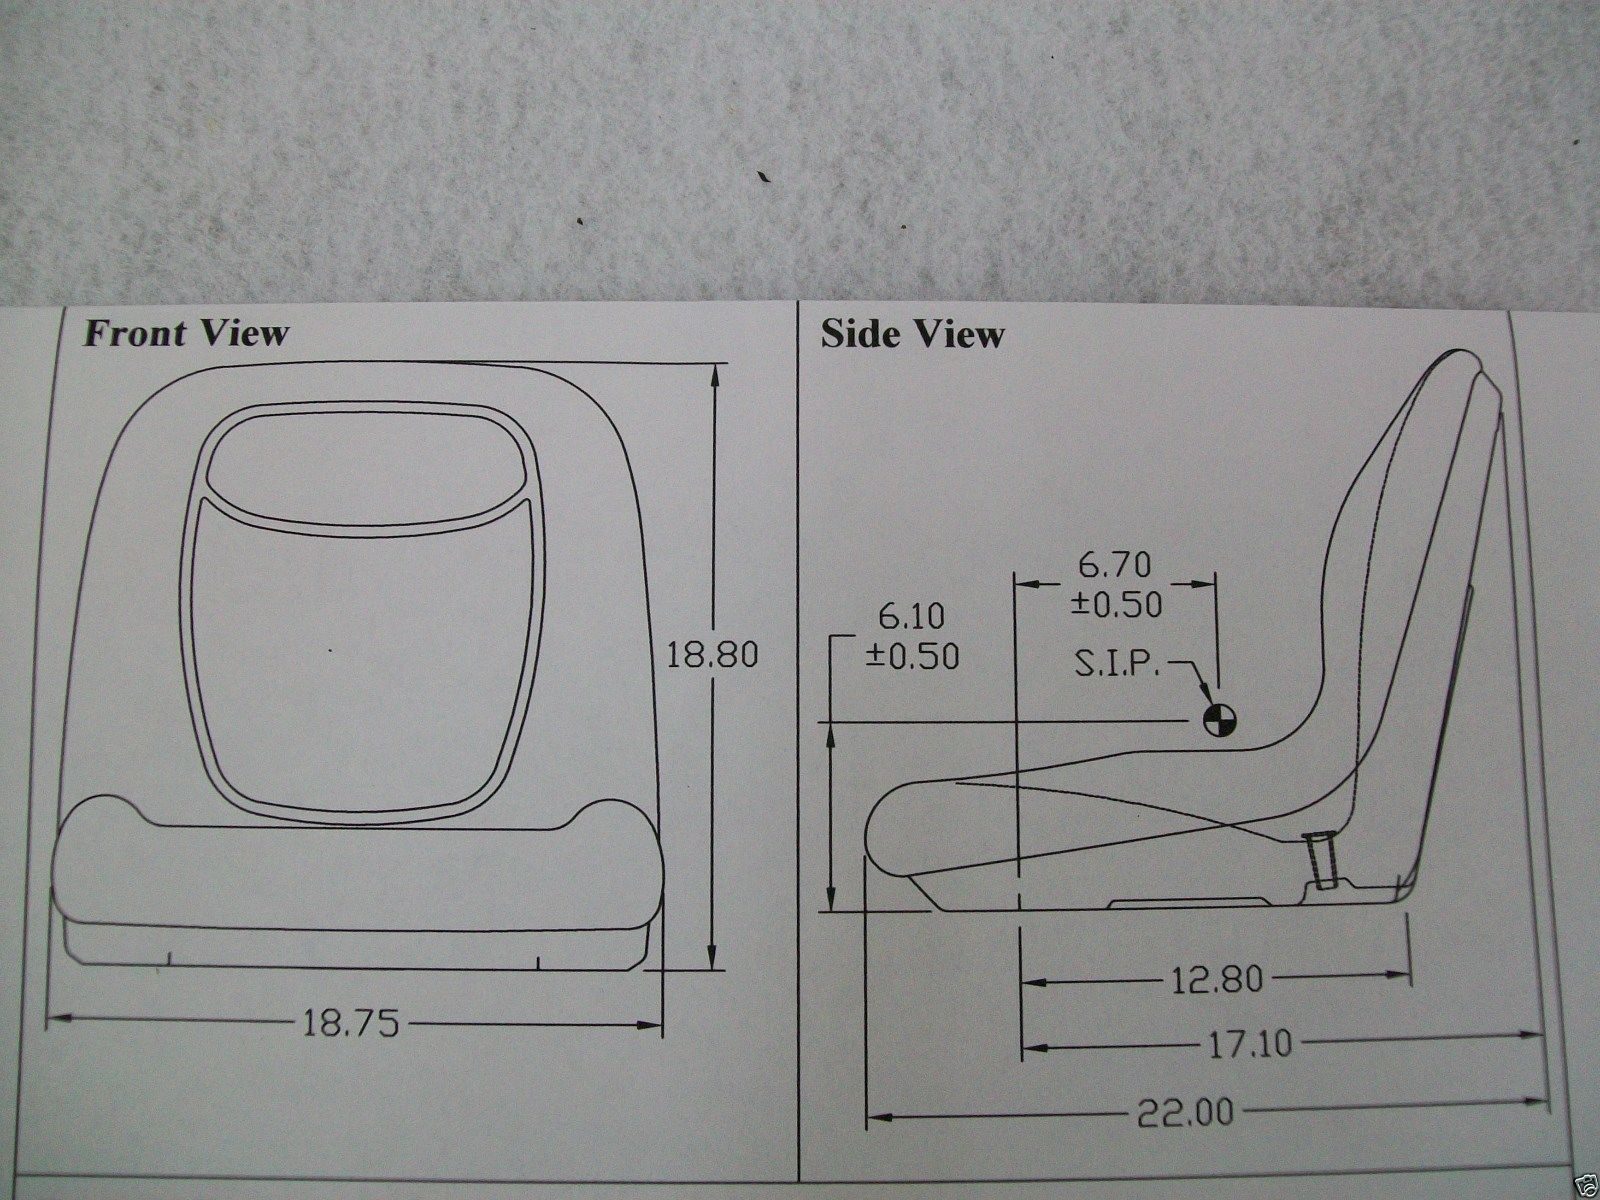 New Holland Ls180 Wiring Diagram Seat. . Wiring Diagram on